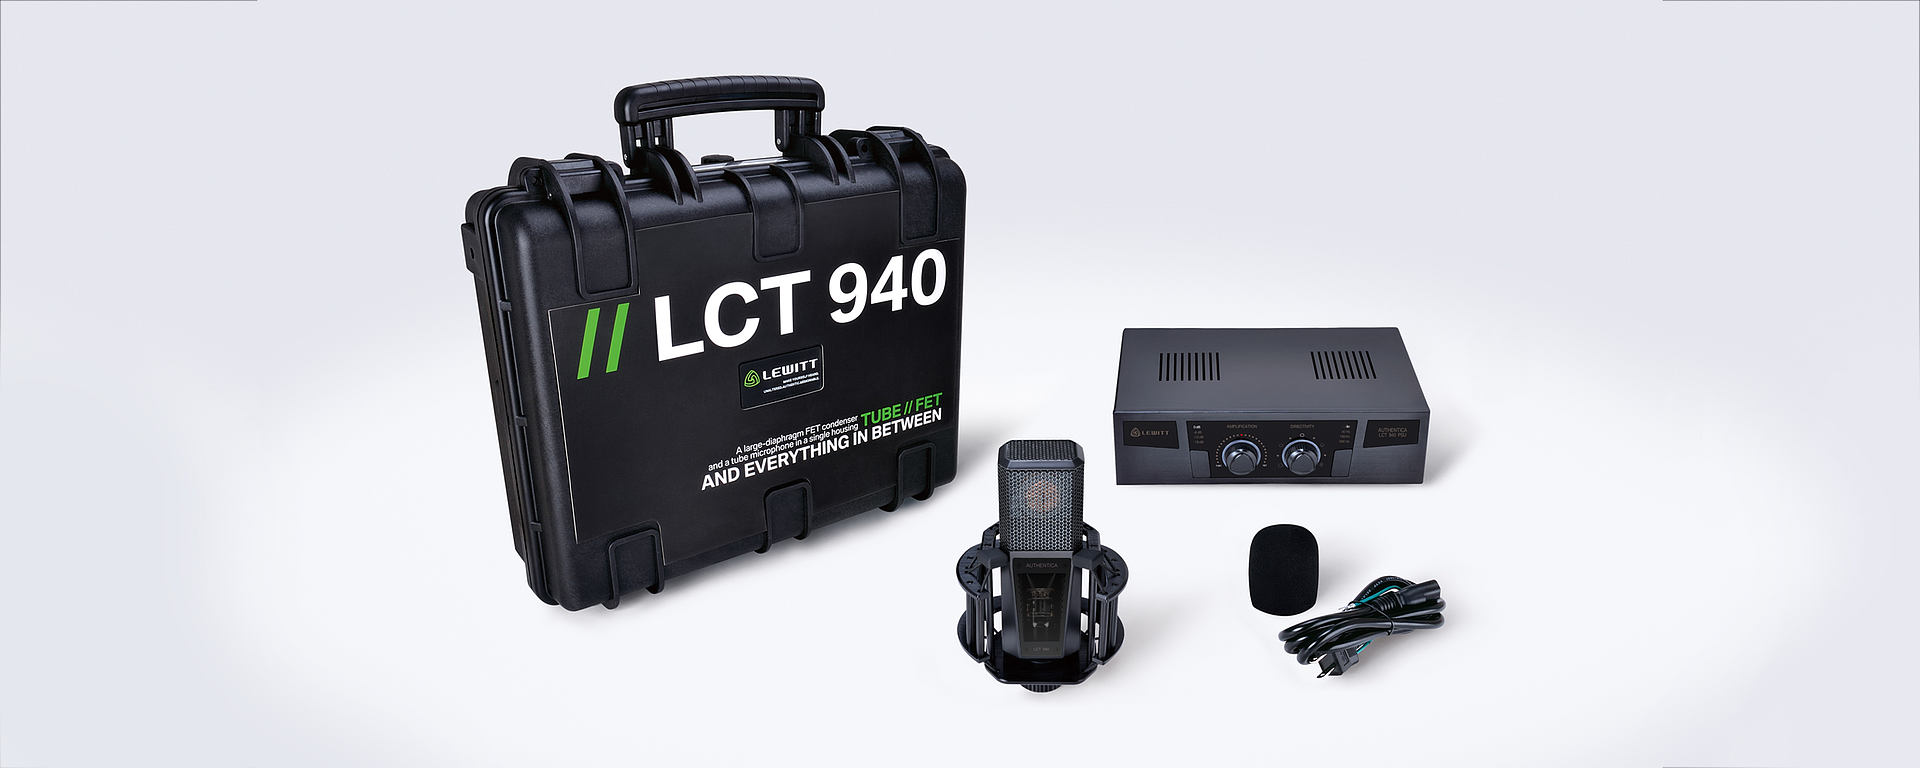 LCT 940 box content